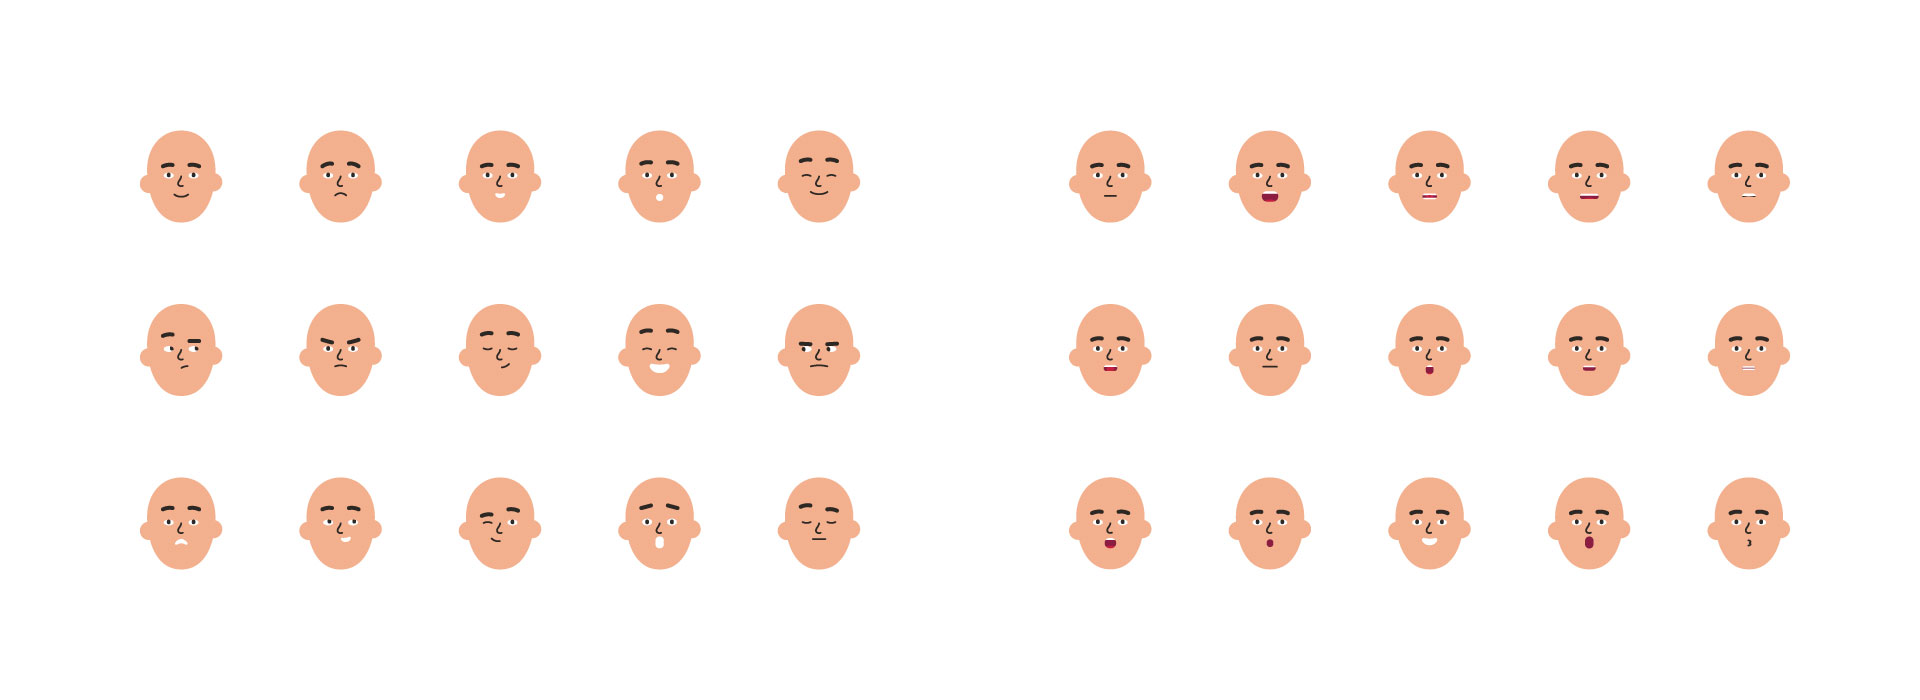 Vector illustration of facial expressions for the CIBC communications